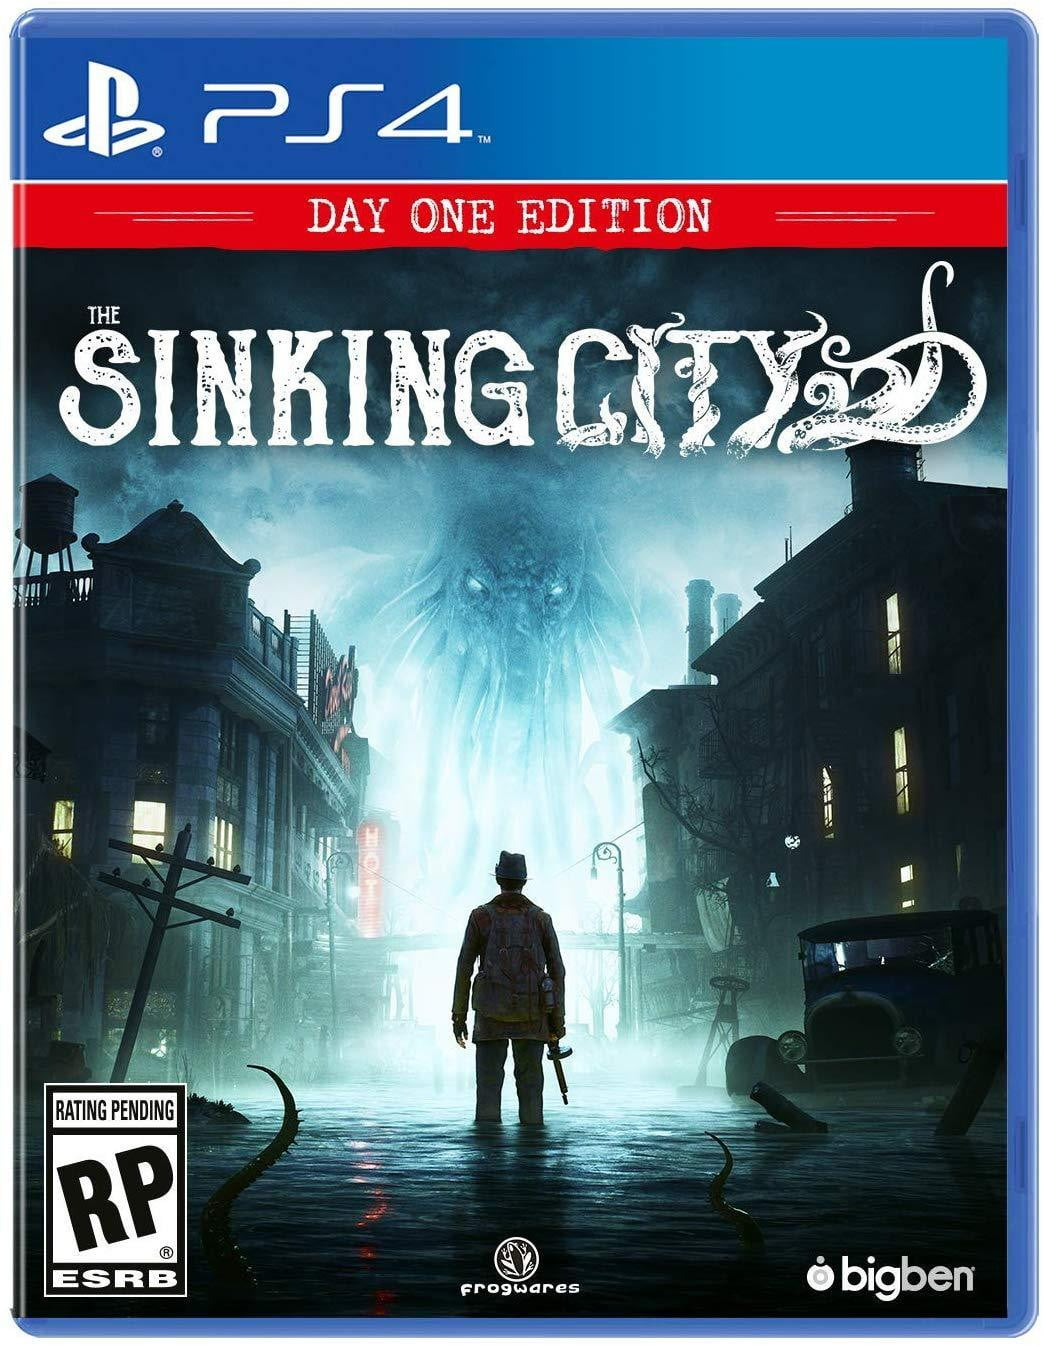 Buy The Sinking City (PS4) a PS4 Game from ShamyStores - Shamy Stores